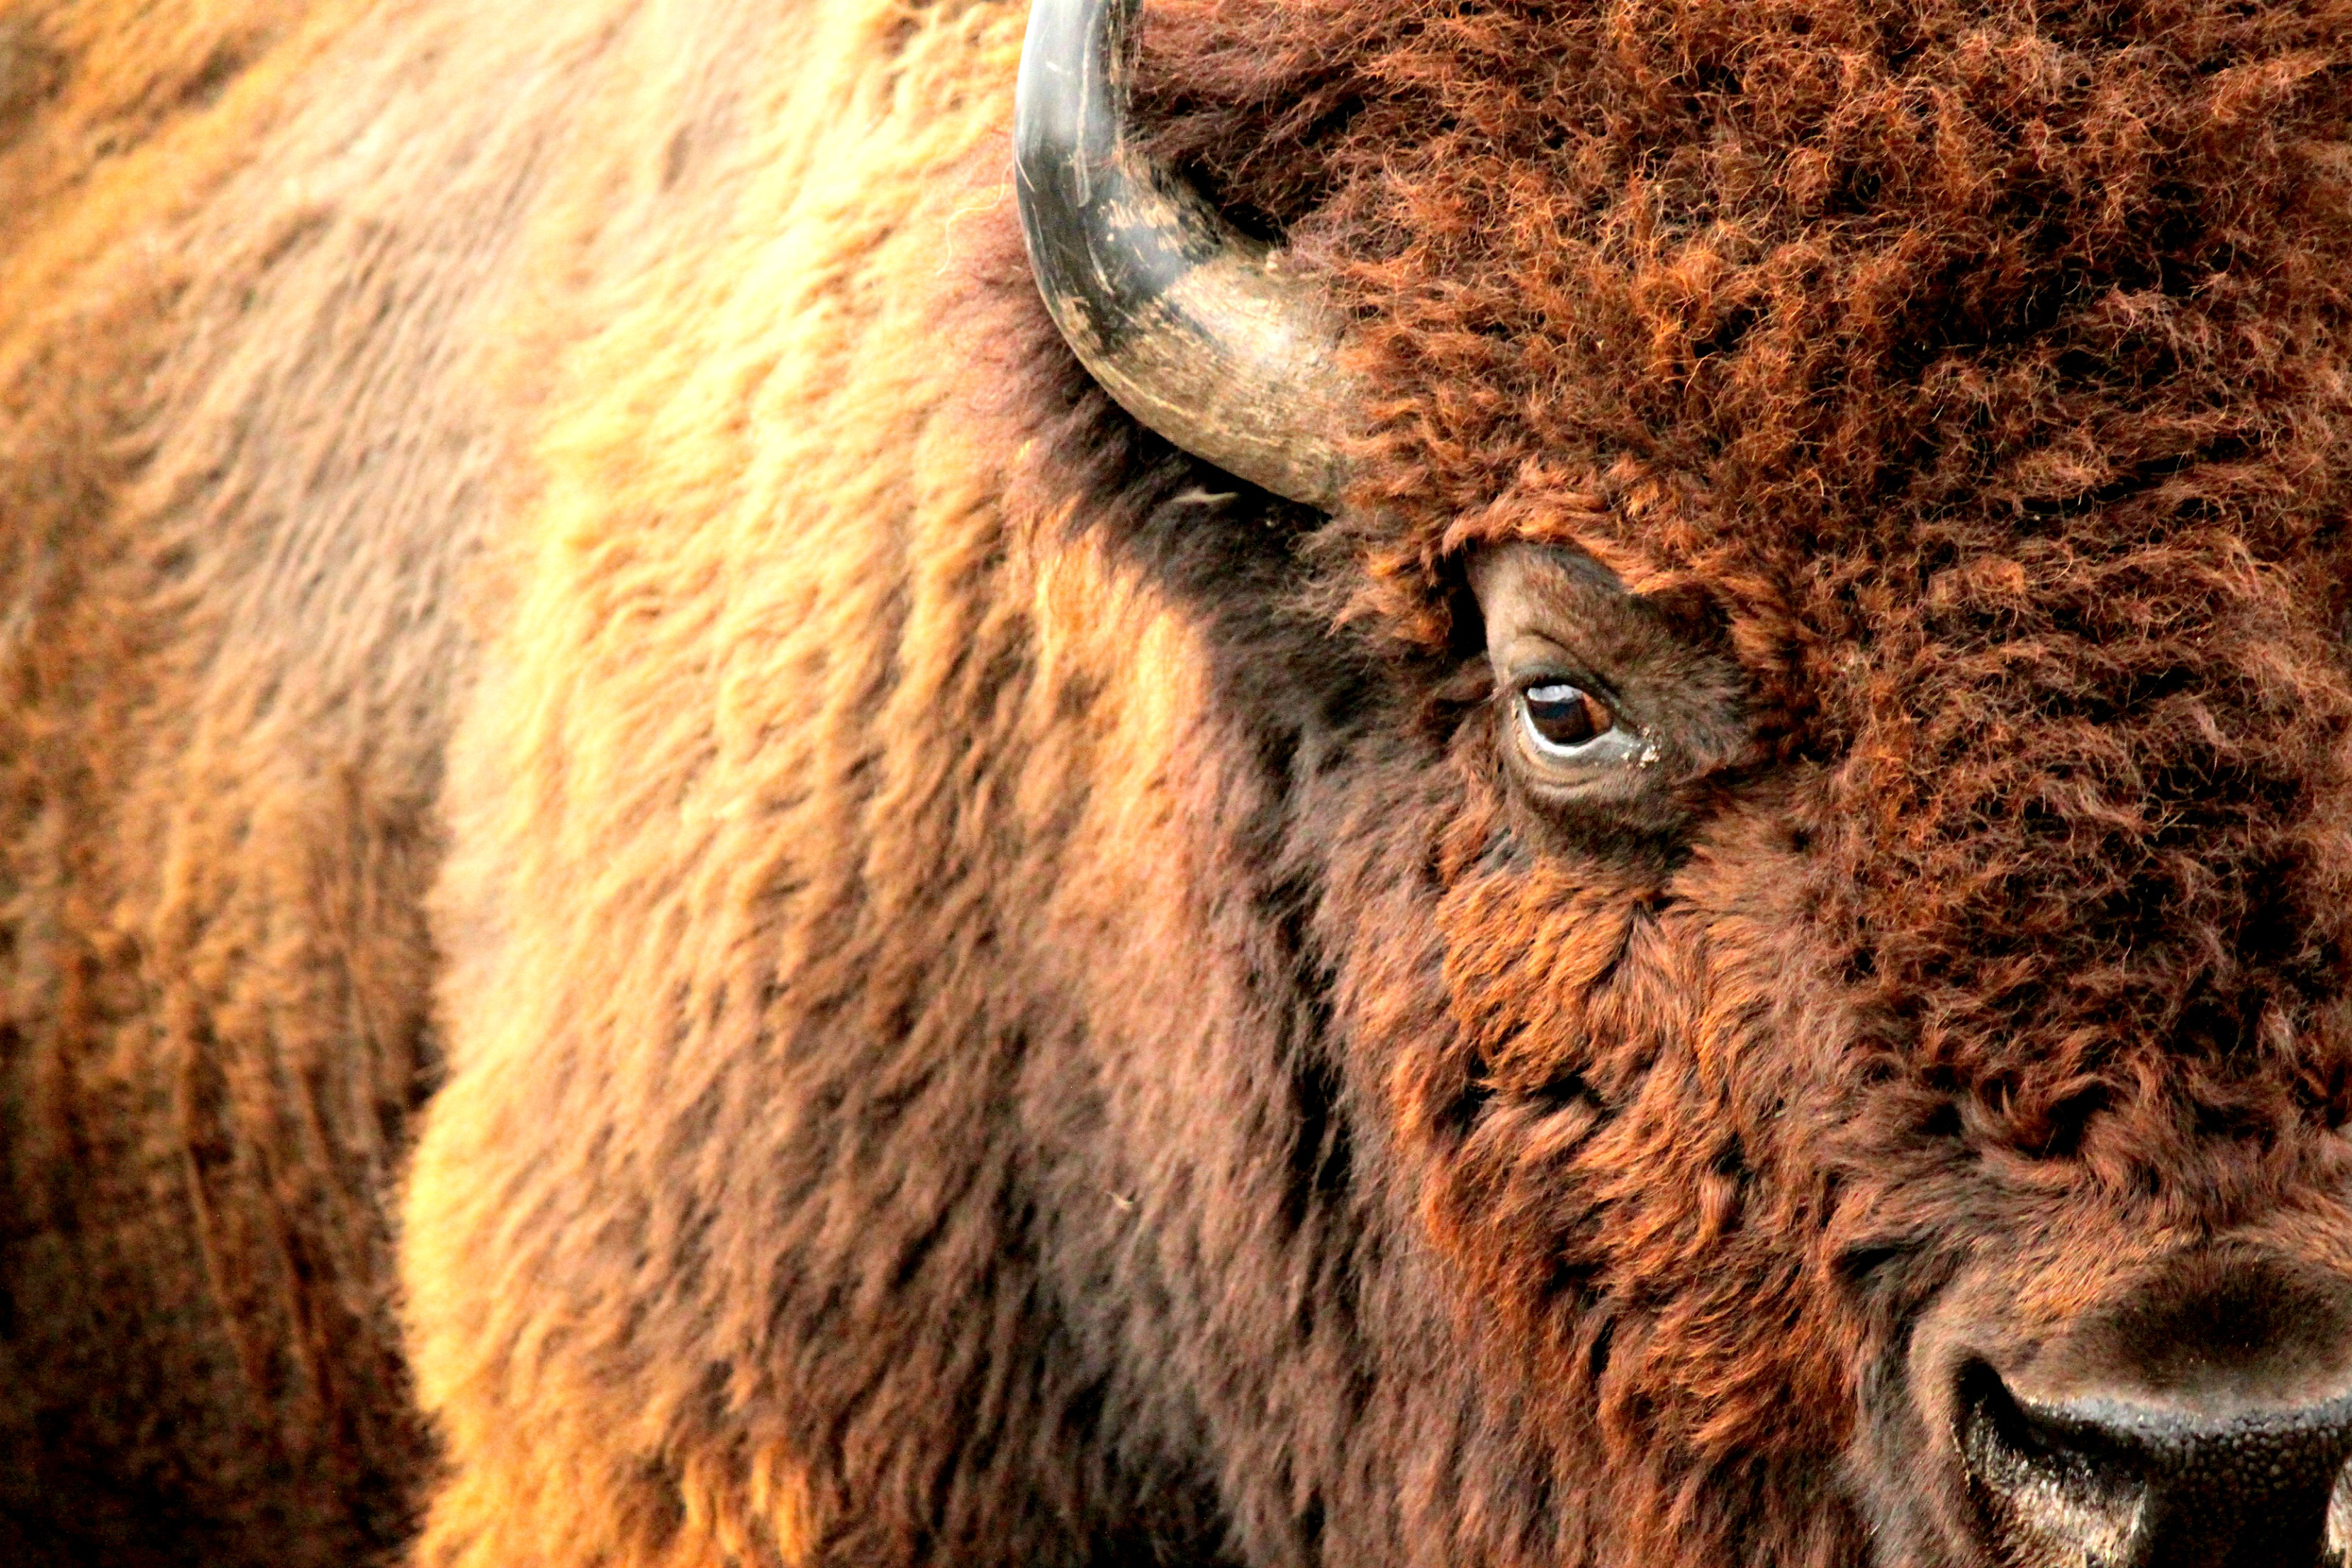 Up close and personal with one of the preserve's herd. Photo by Josie Briggs